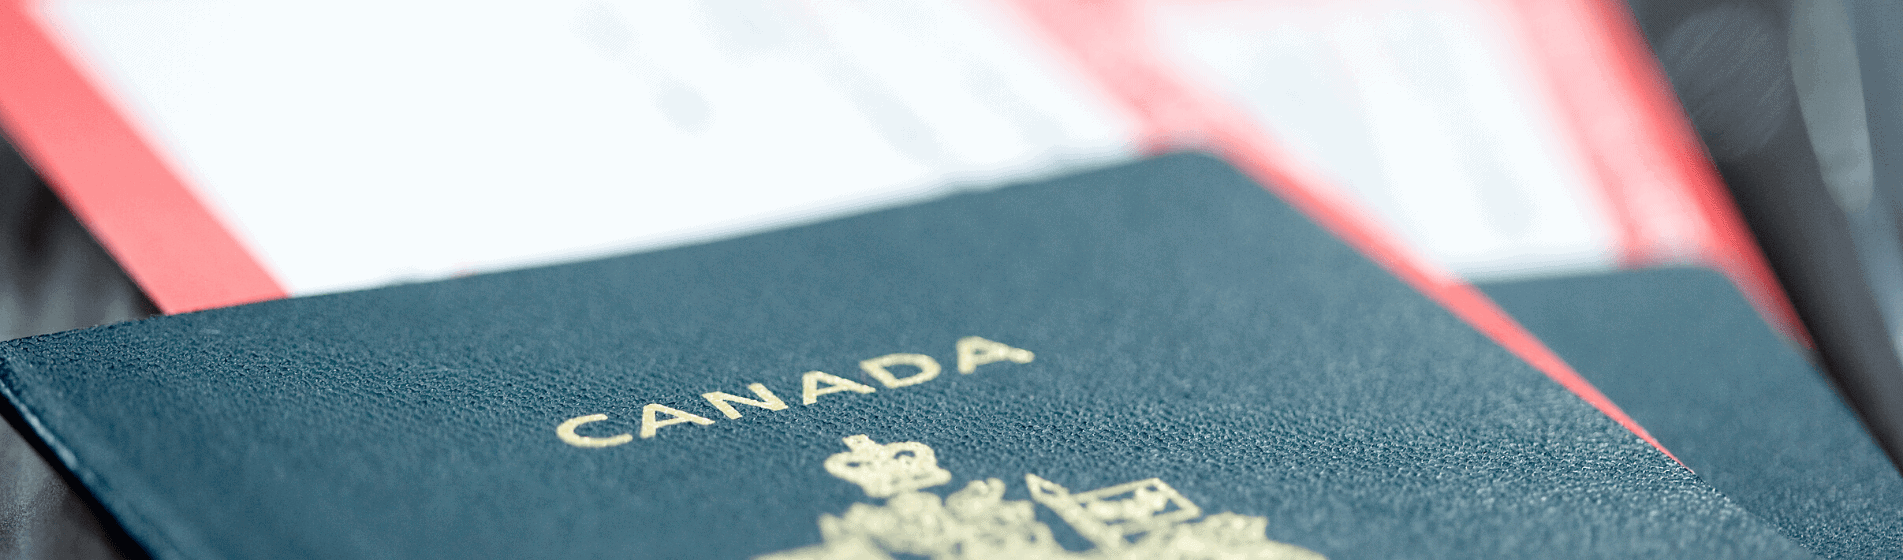 How to Get Canadian Citizenship: The Ultimate Guide | Nomad Capitalist